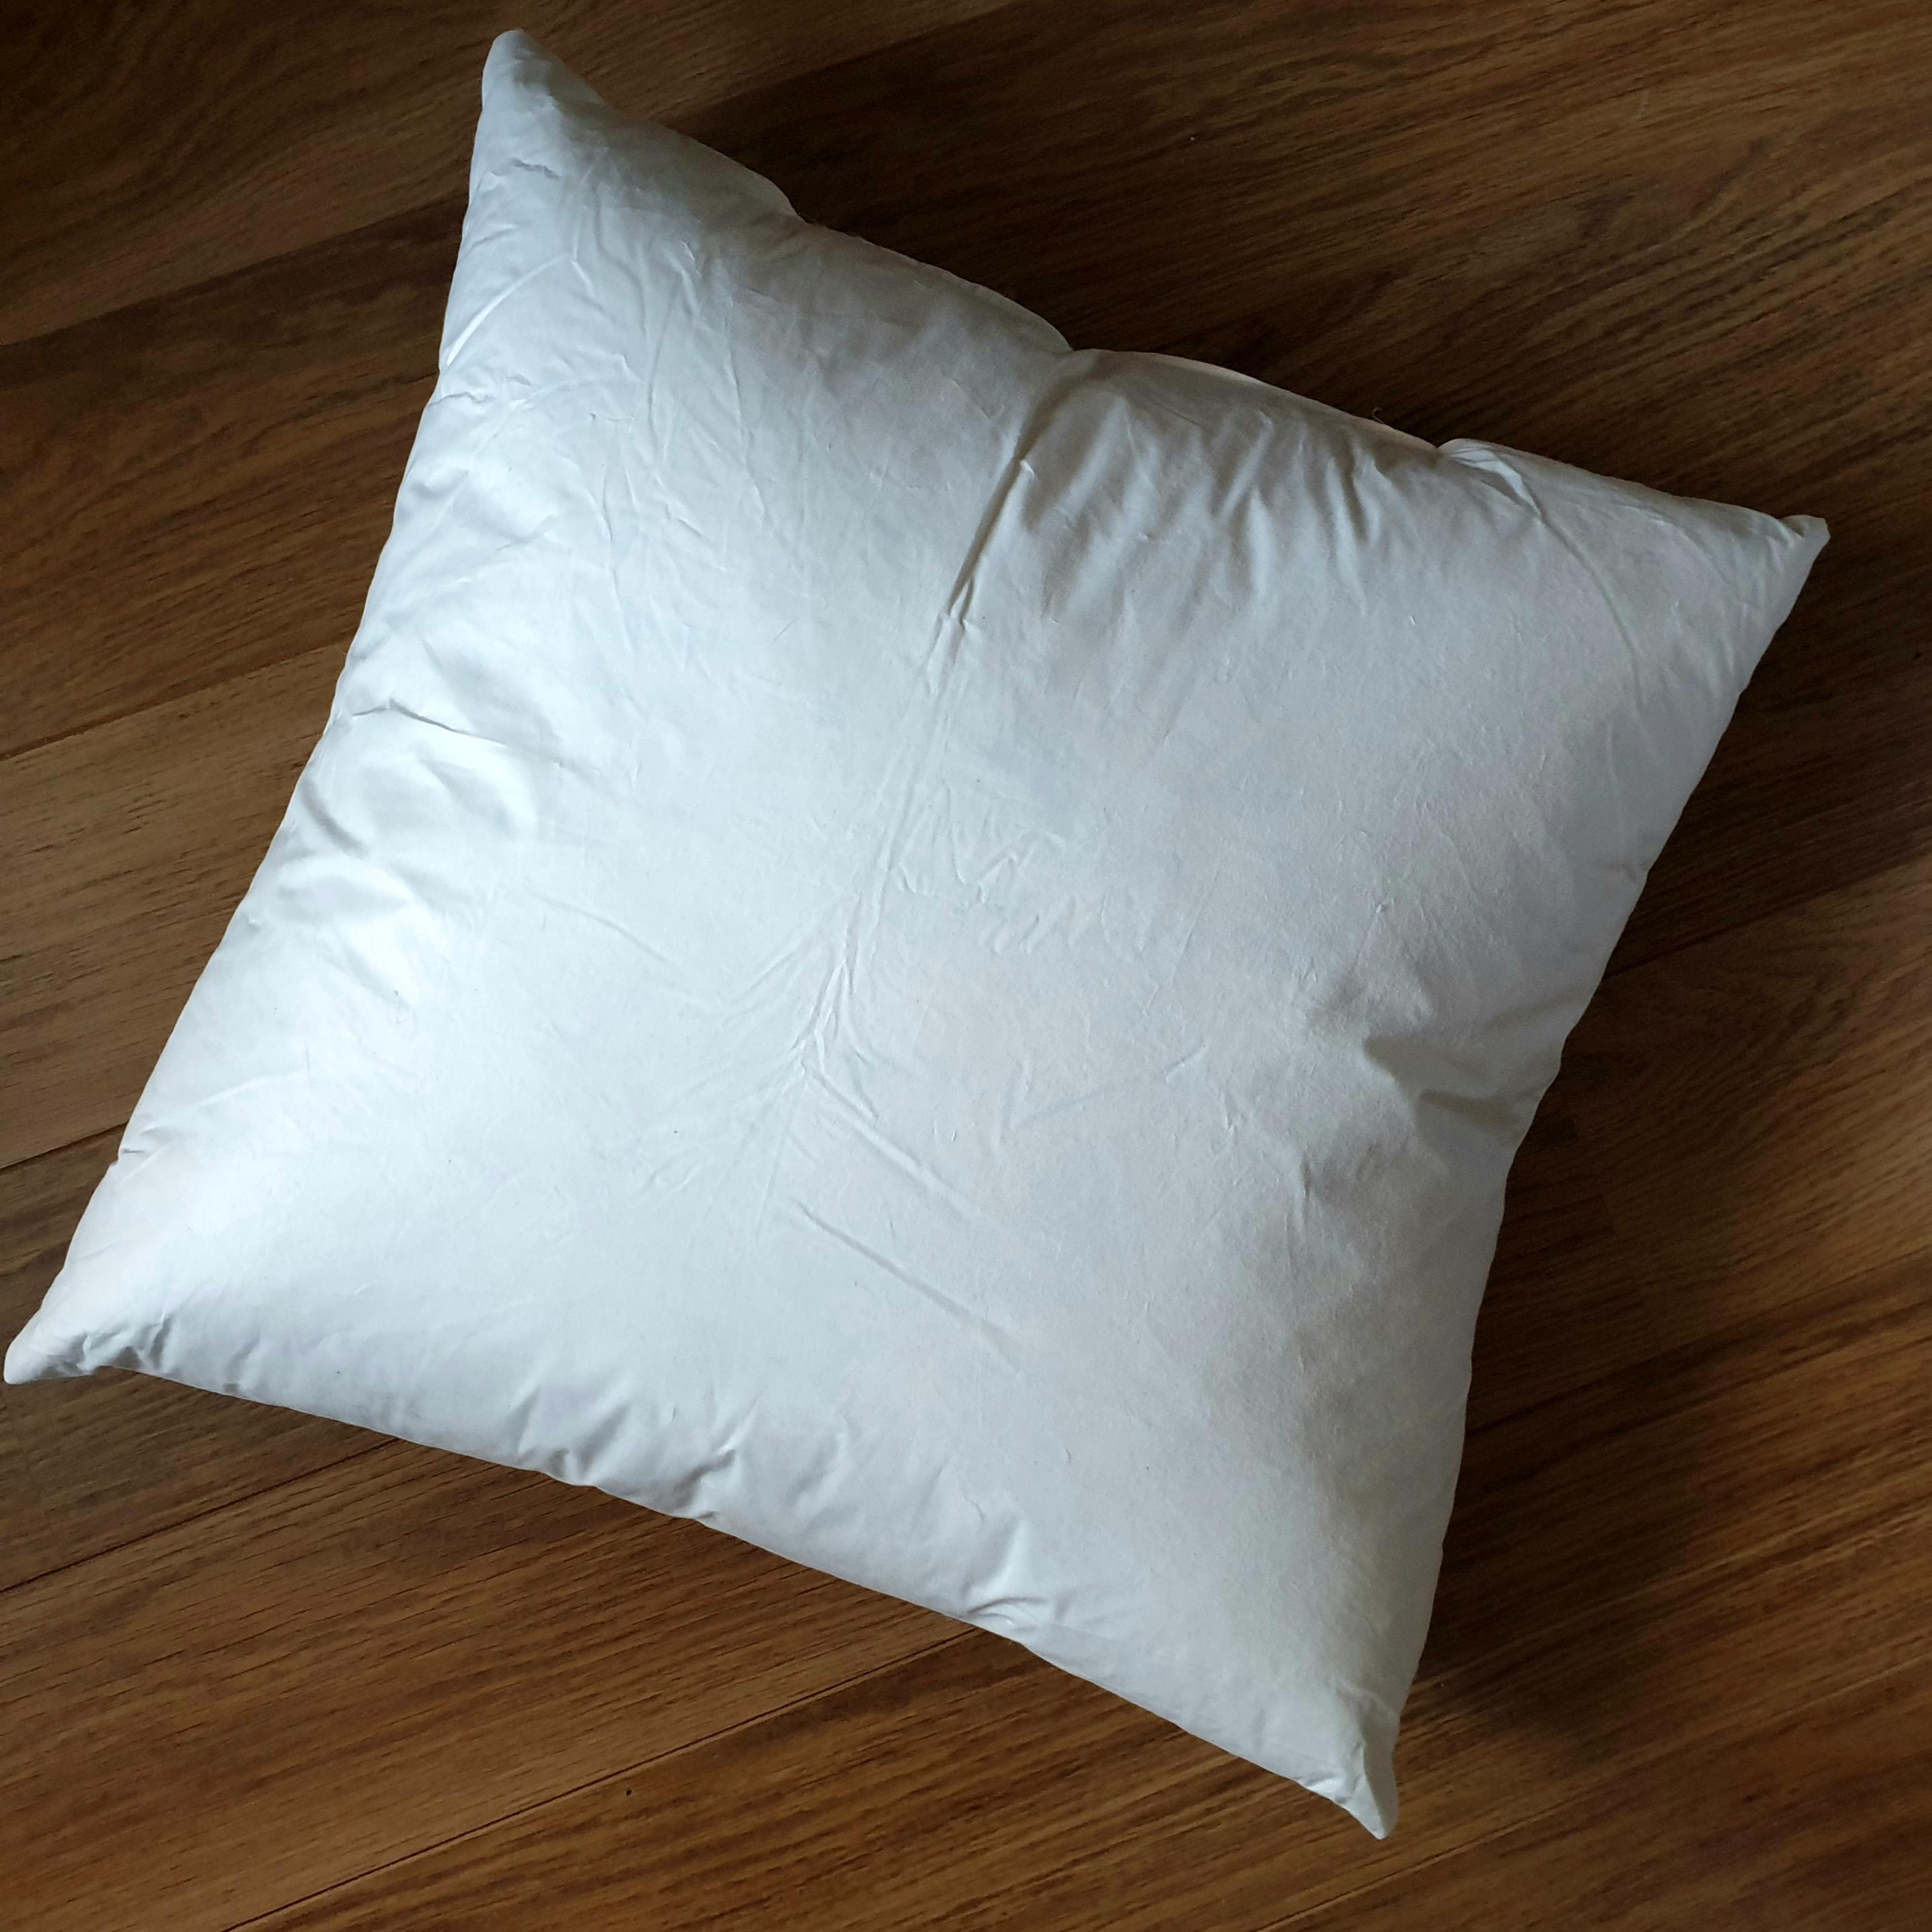 50cm cushion inner pad generously filled with 100% white duck feathers in ecru cream 100% cotton outer cover.